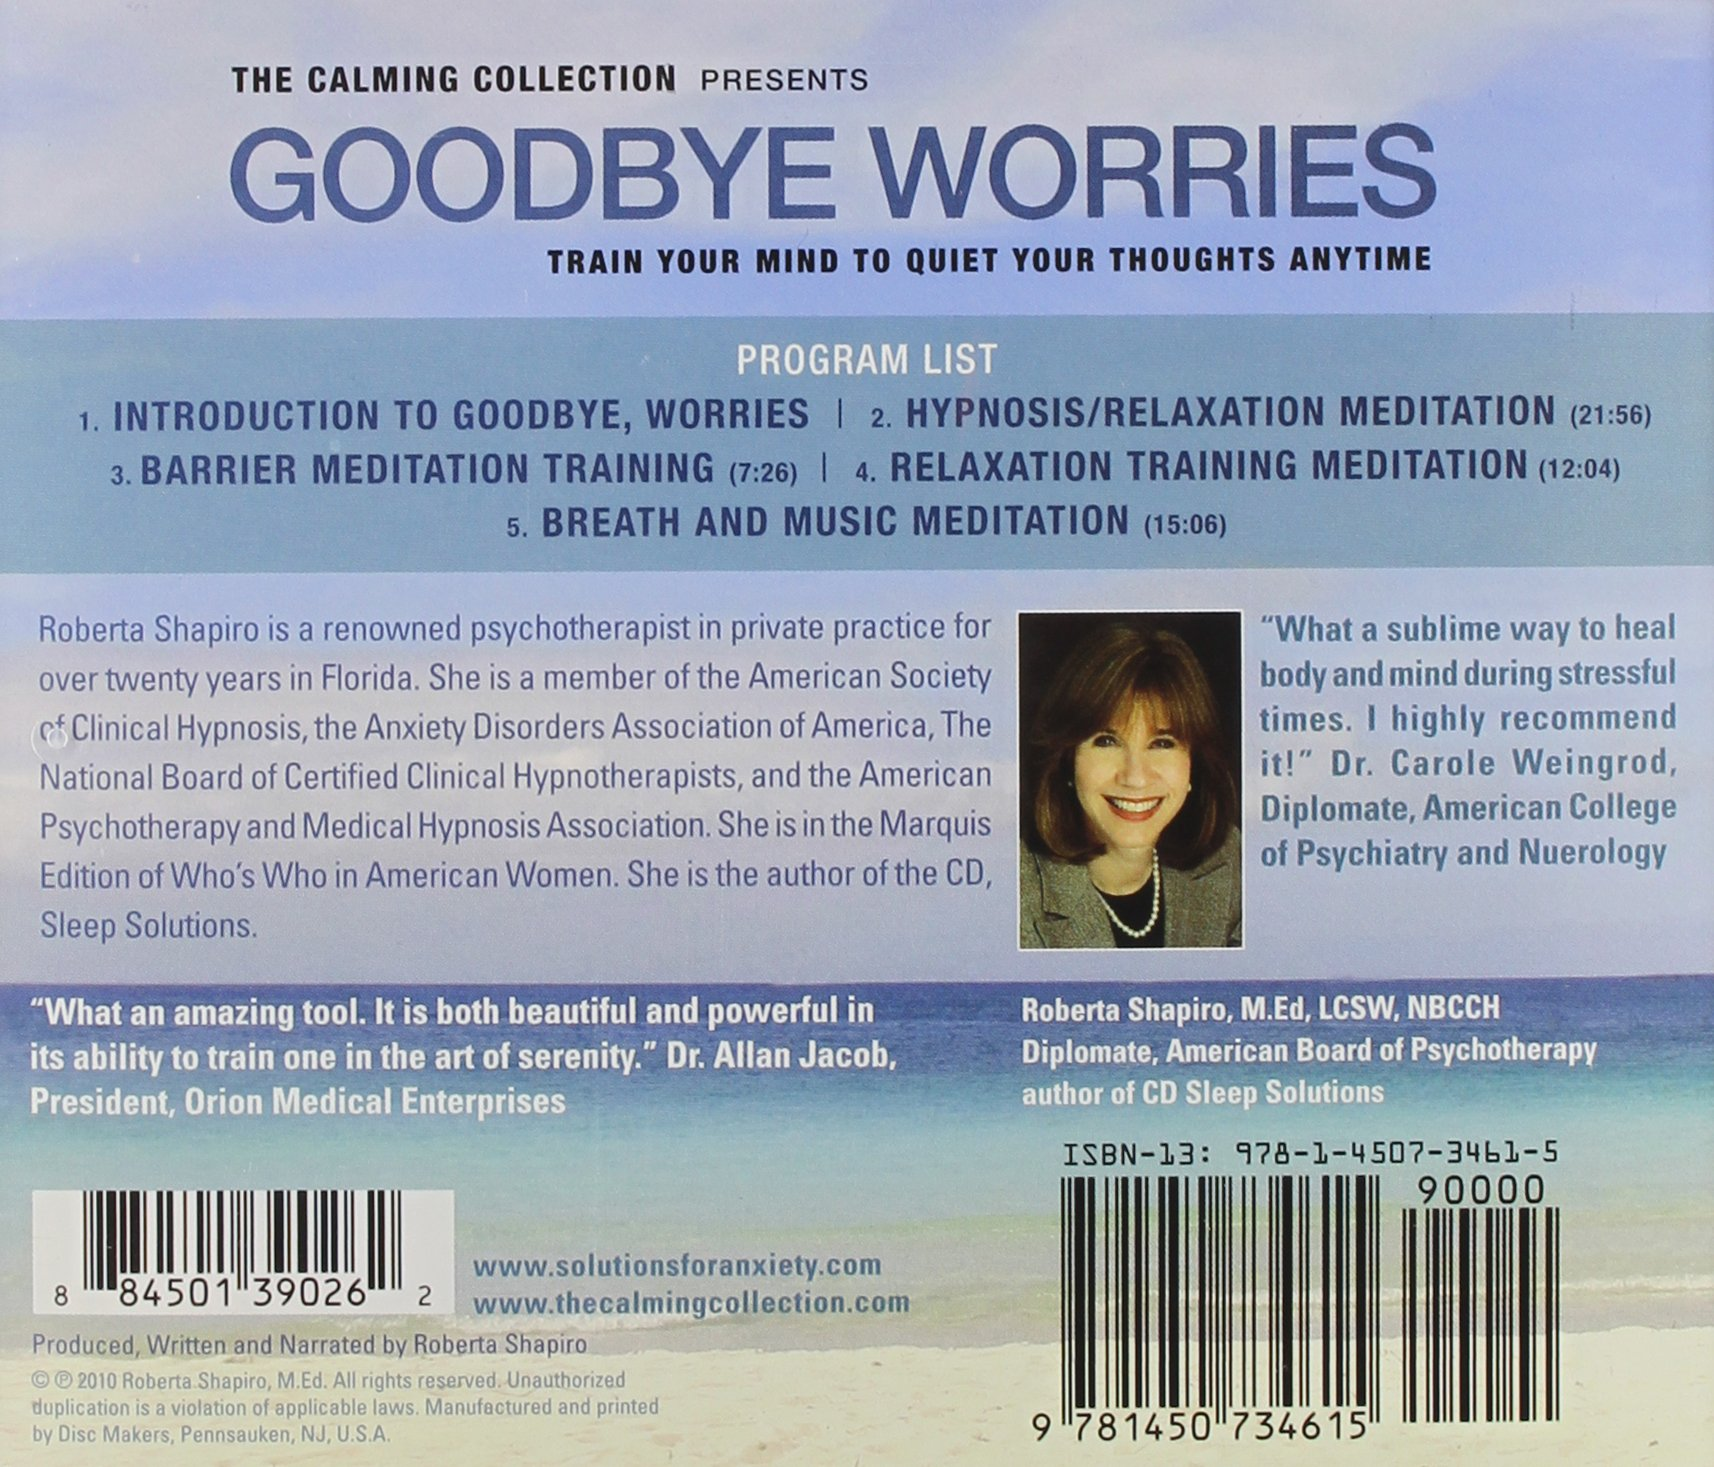 The Calming Collection - Goodbye Worries. ** Guided meditation to train your mind to quiet your thoughts - Train your mind to quiet your thoughts CD - Hypnotic Guided CD ** by CD Baby (distributor)